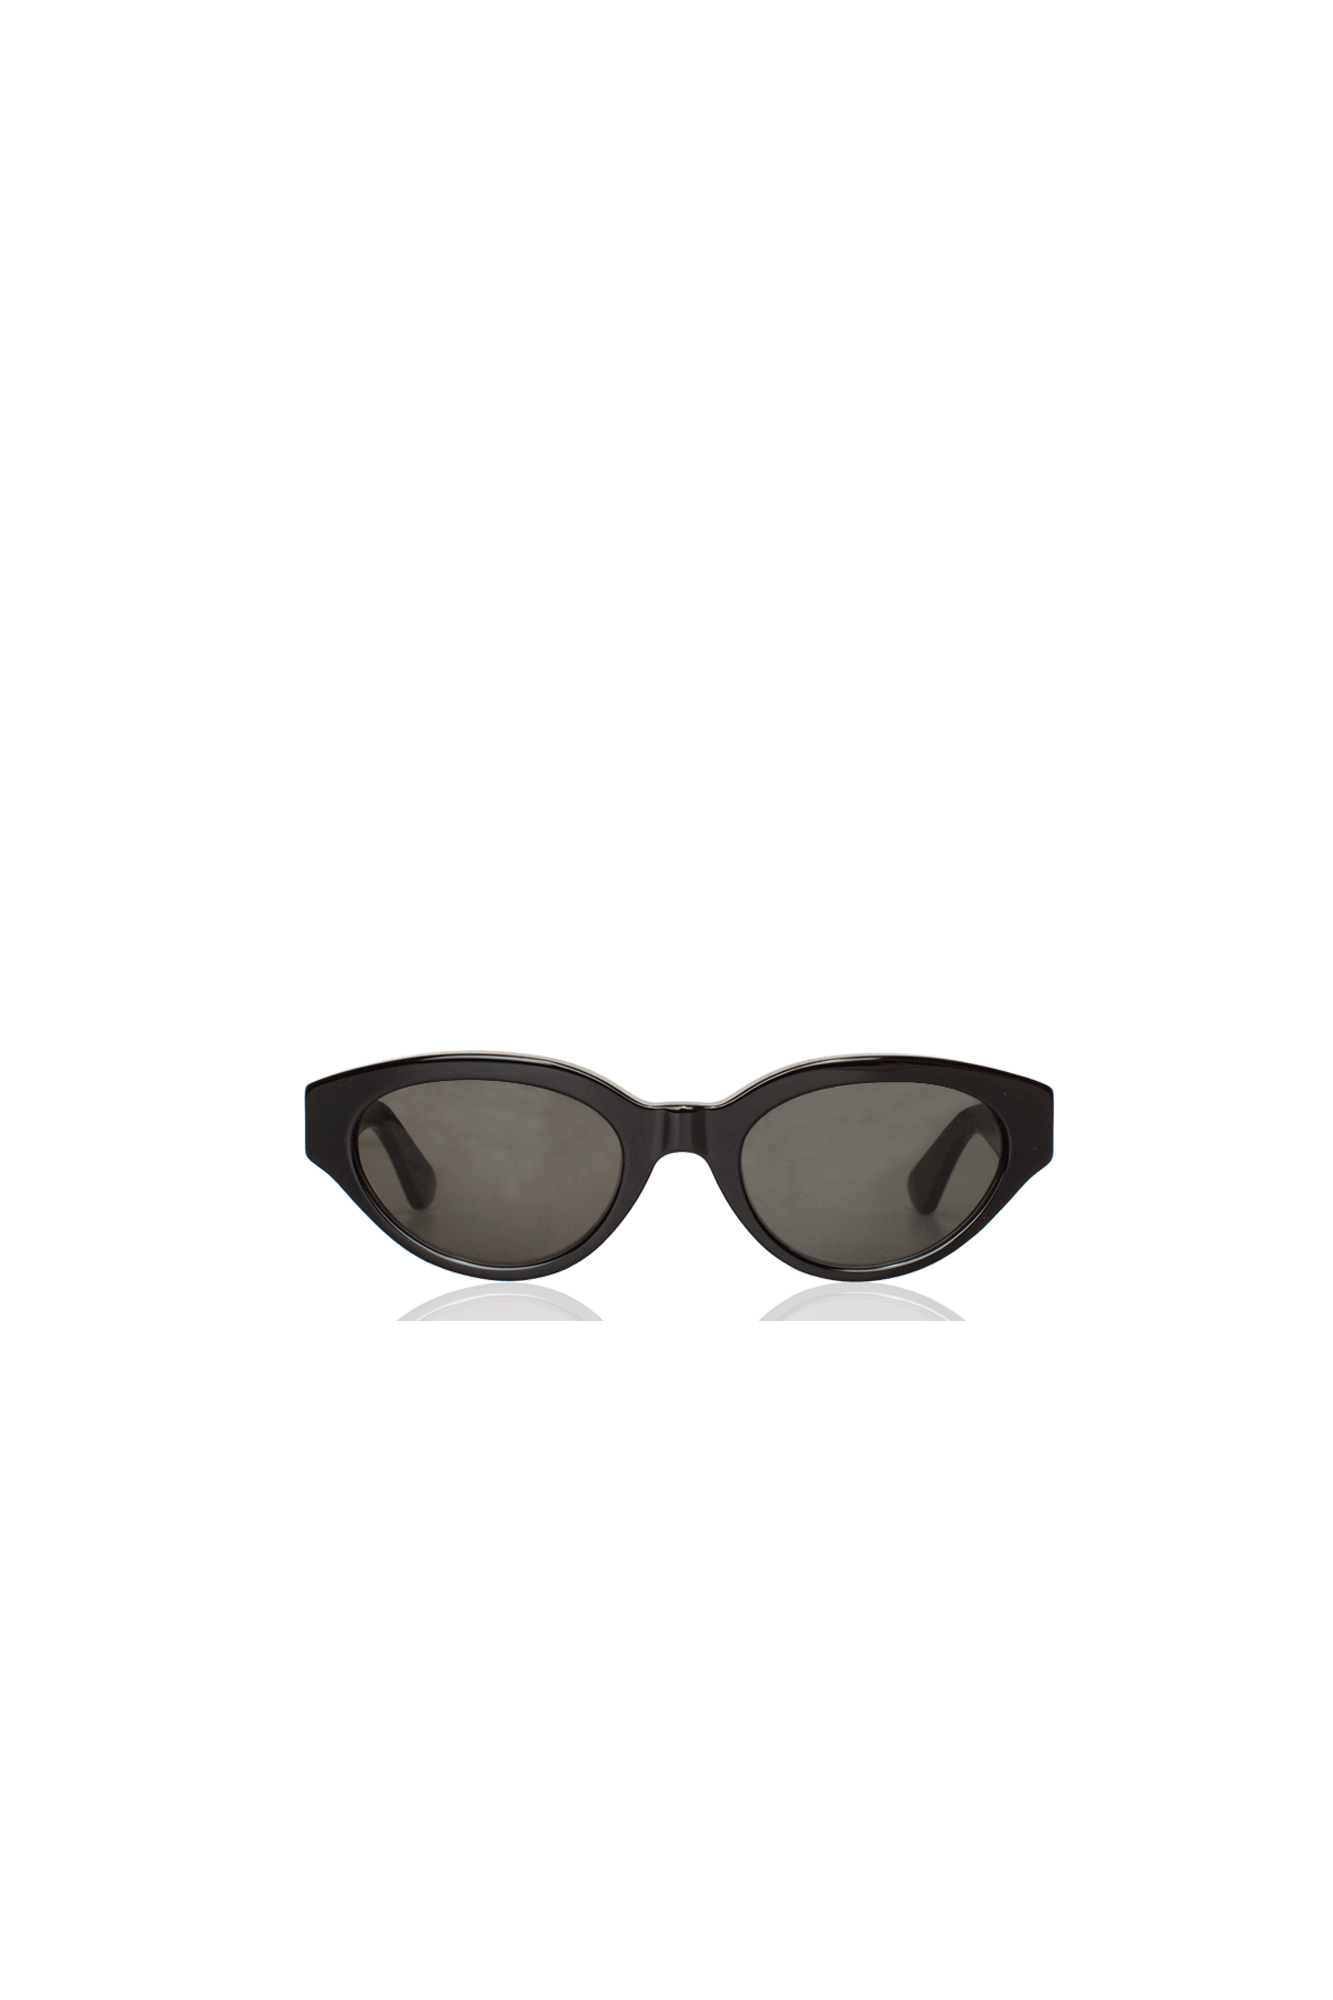 Retrosuperfuture Sunglasses Drew Black IYDK#000#BLK#OS - One Block Down